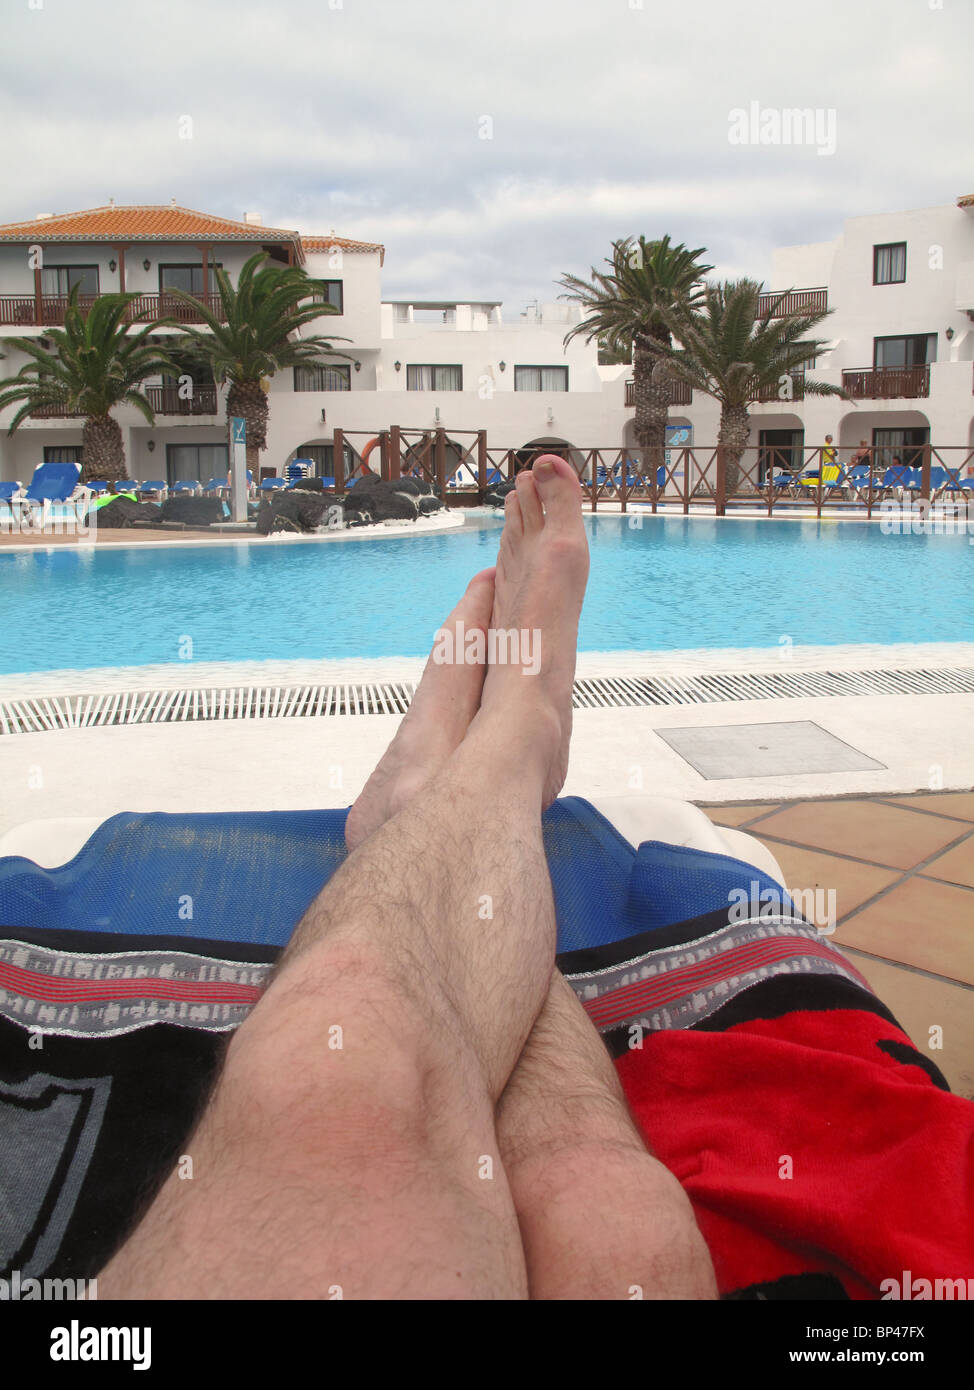 Mans feet on sunbed by pool - Stock Image